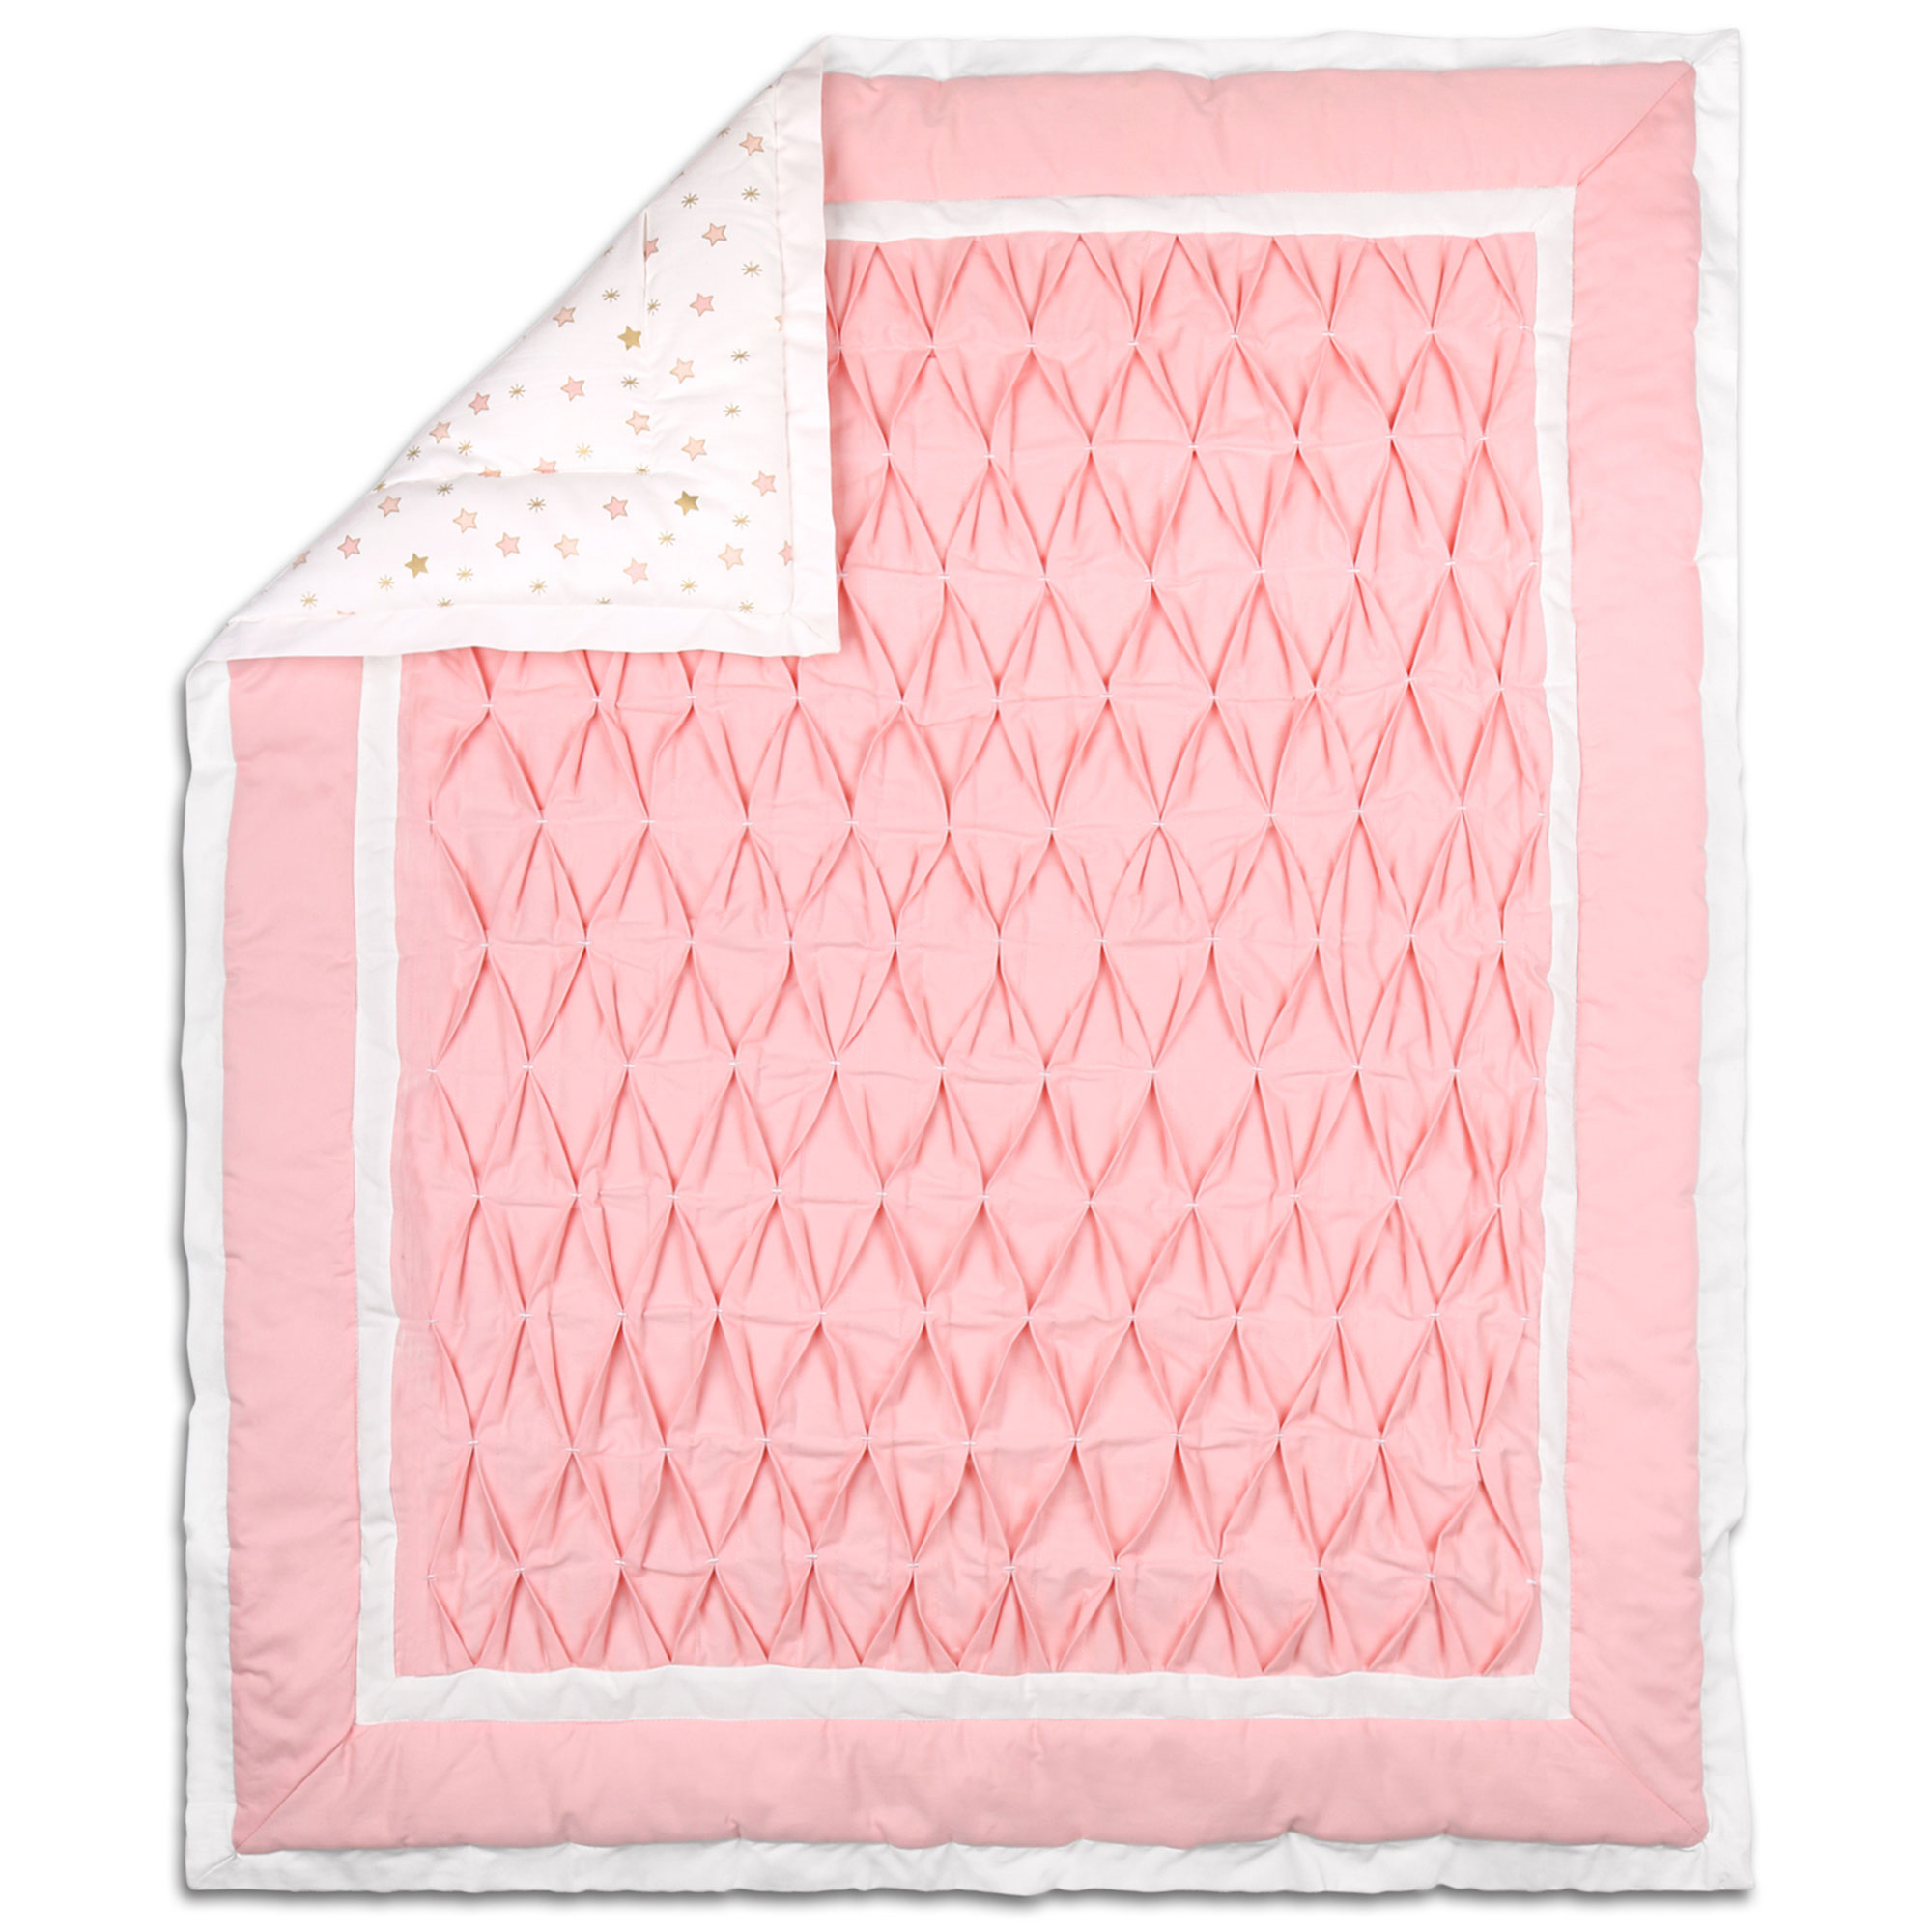 Coral Pink Pleats and Gold Stars Baby Crib Coverlet by The Peanut Shell